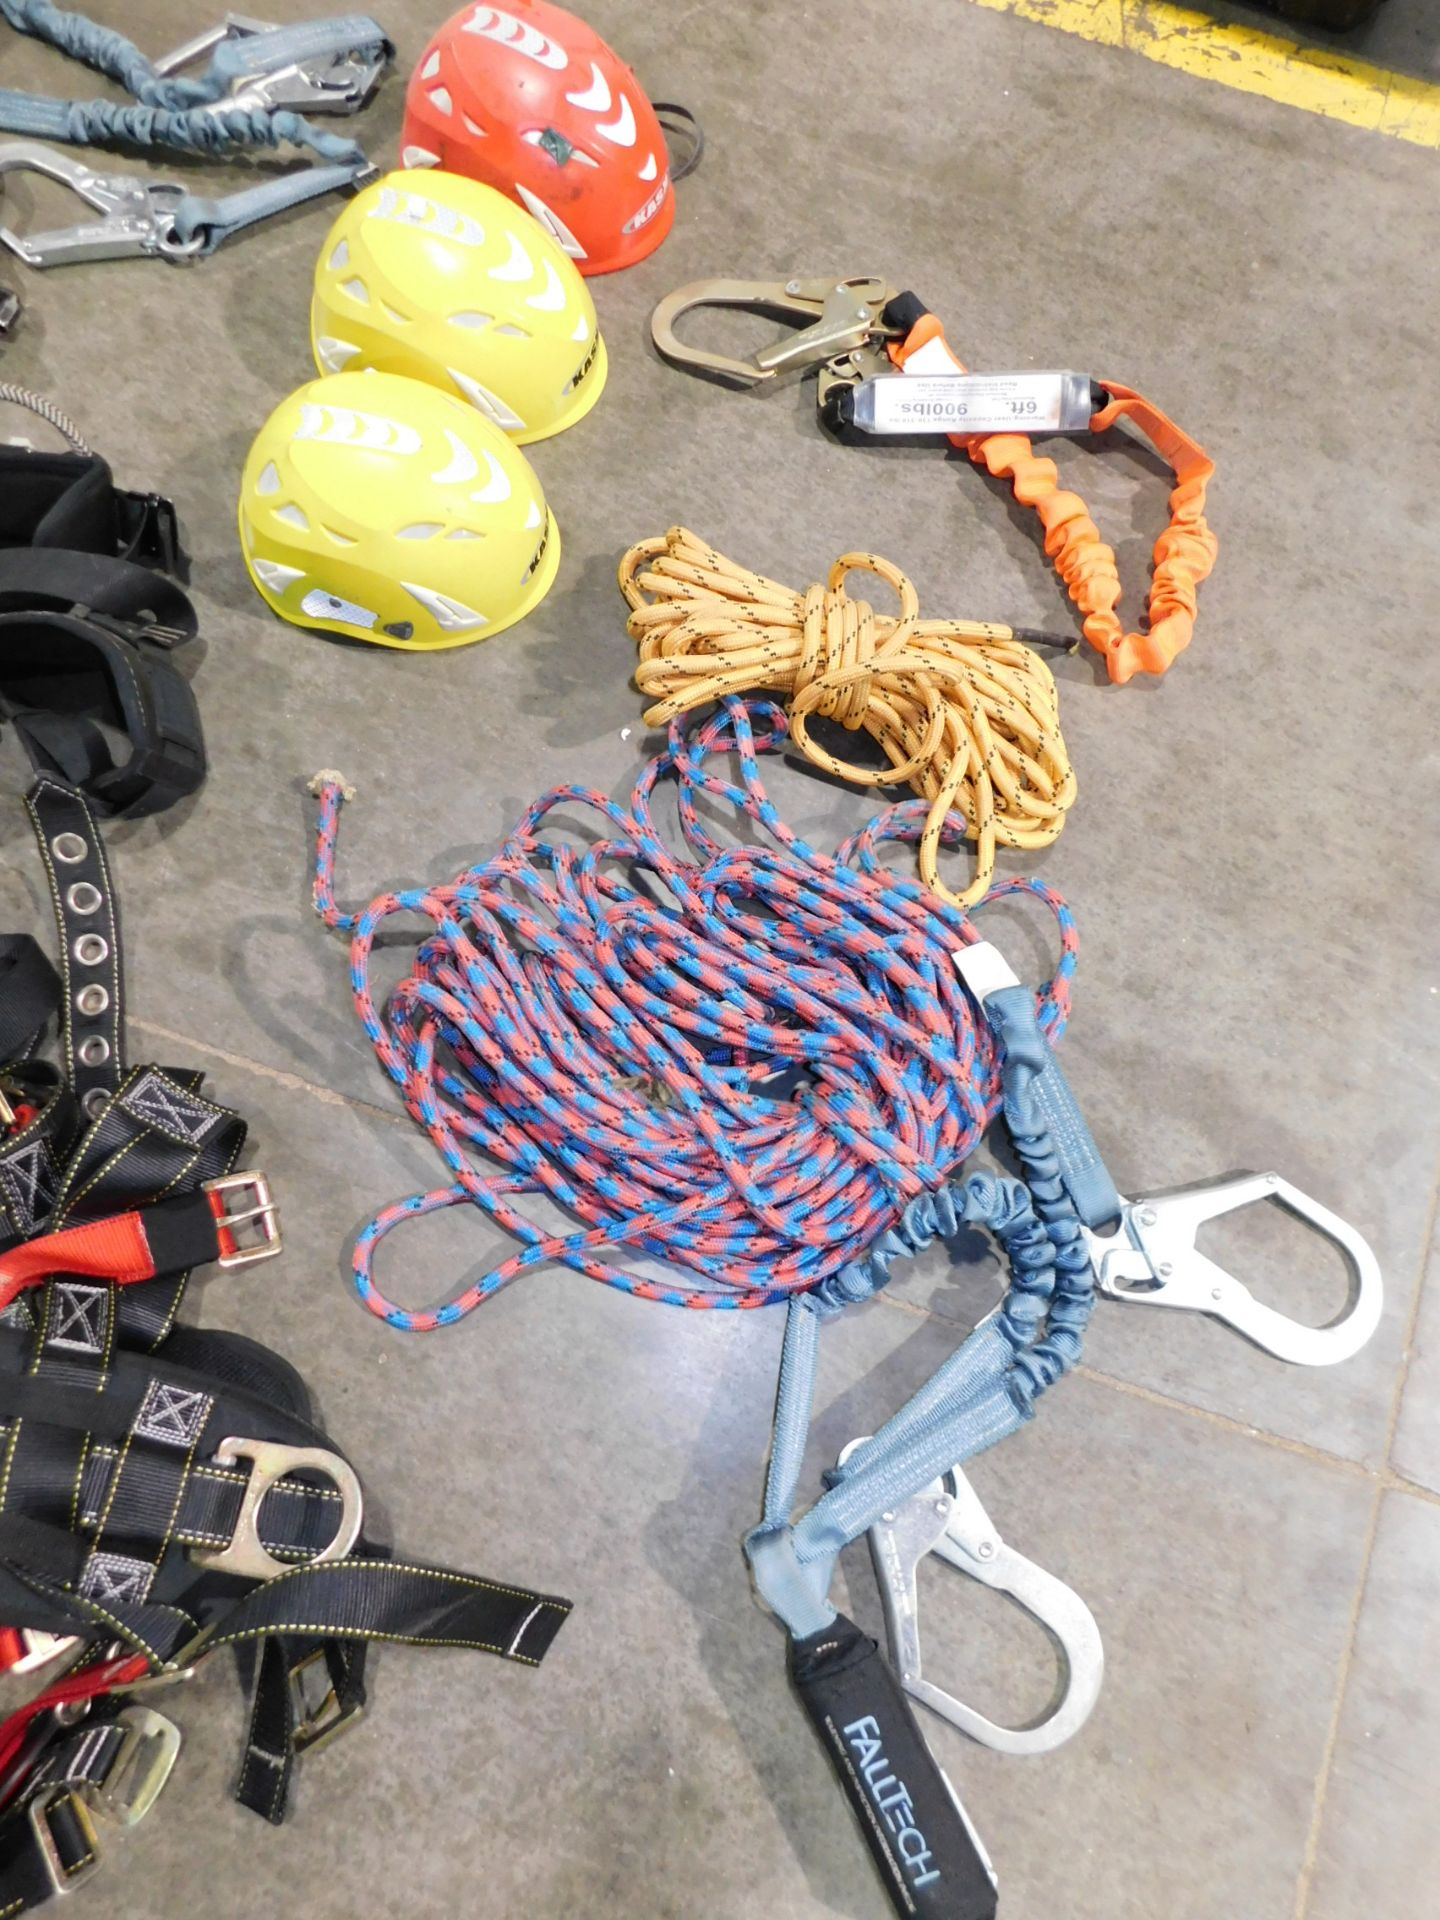 Lot 23 - Safety Harnesses, Rope and Helmets